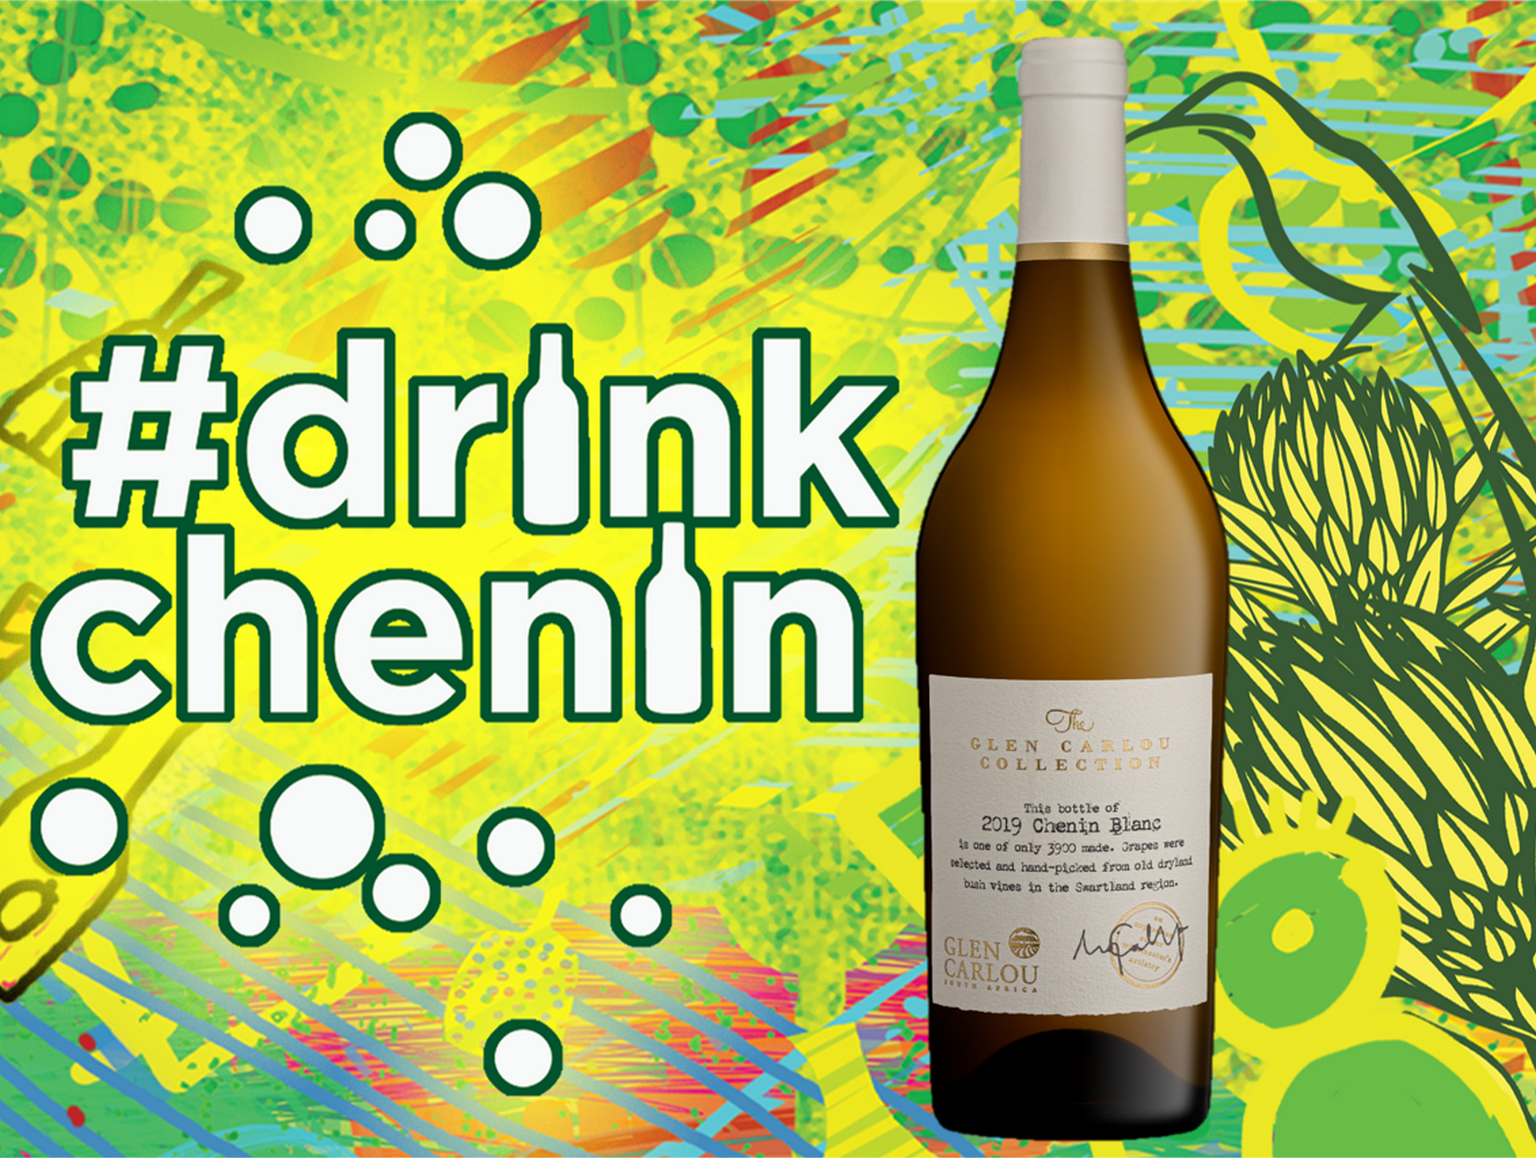 Collection Chenin Blanc